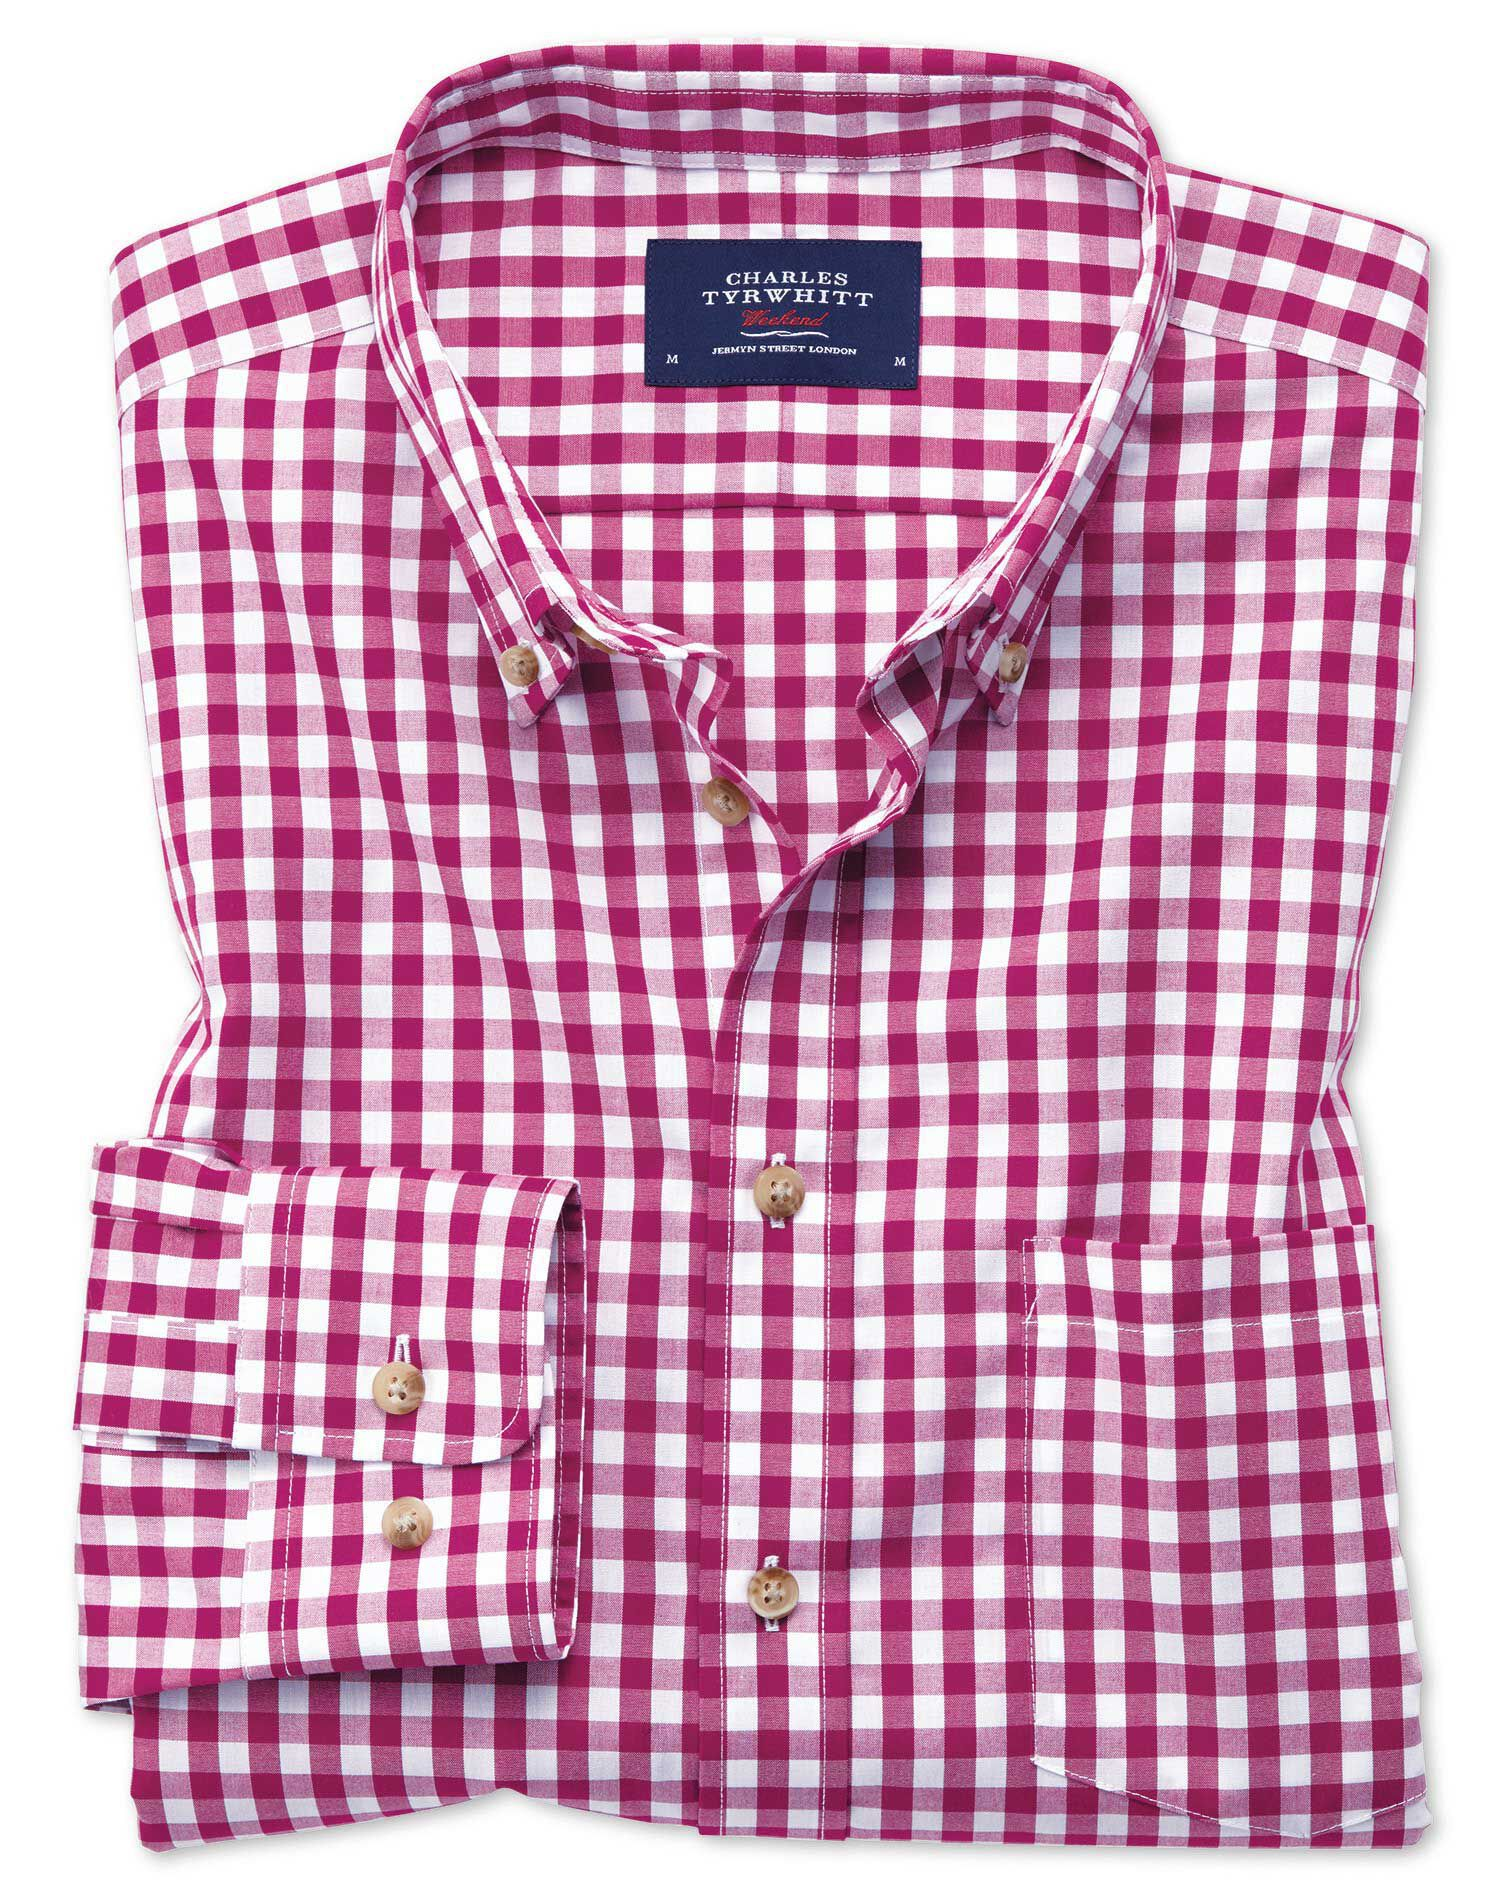 Classic Fit Non-Iron Poplin Red Gingham Cotton Shirt Single Cuff Size Large by Charles Tyrwhitt